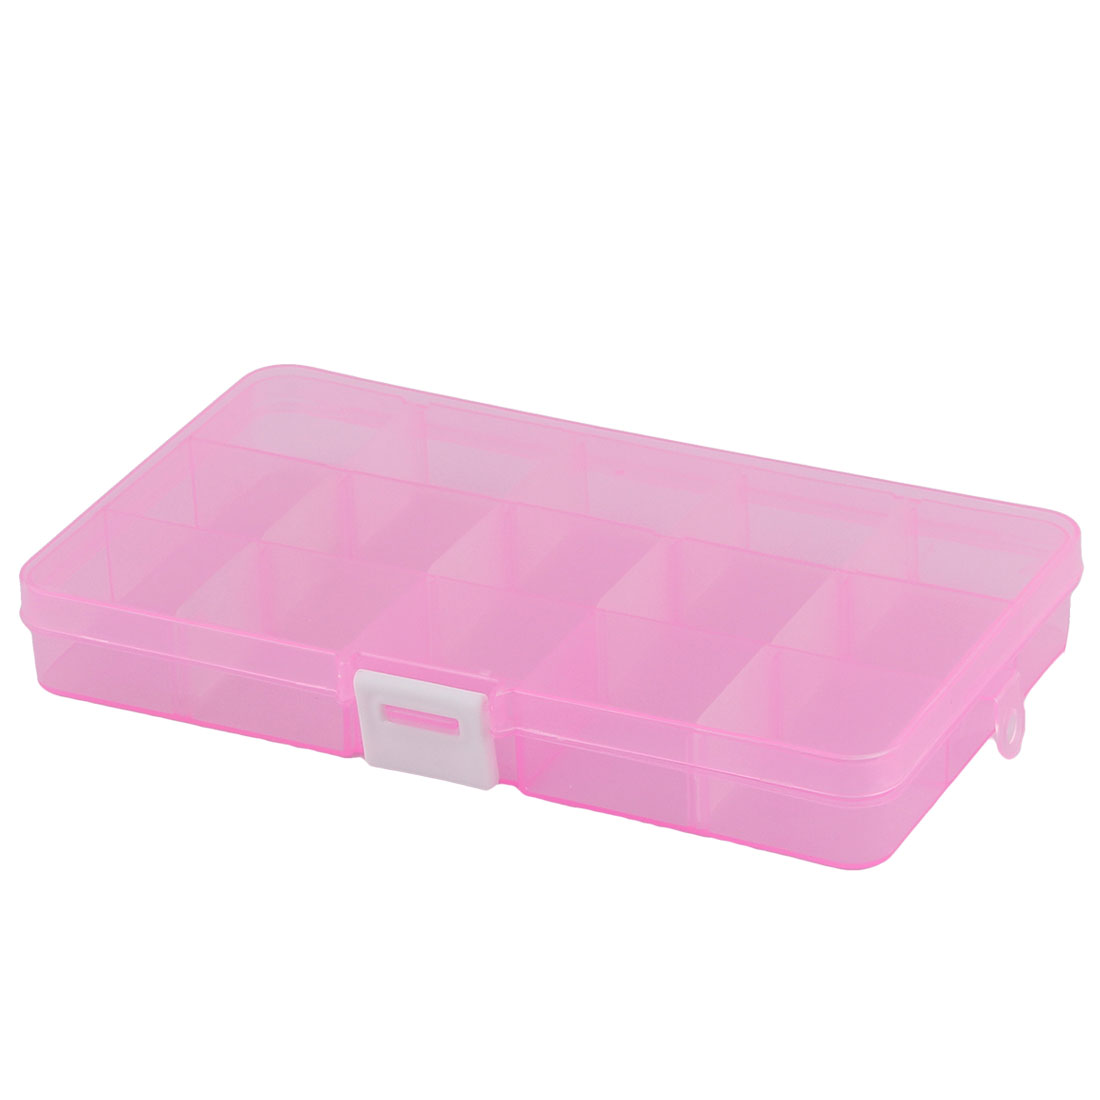 Home Desk Jewelry Bead Nail 15 Grid Storage Case Box Organizer Clear Pink